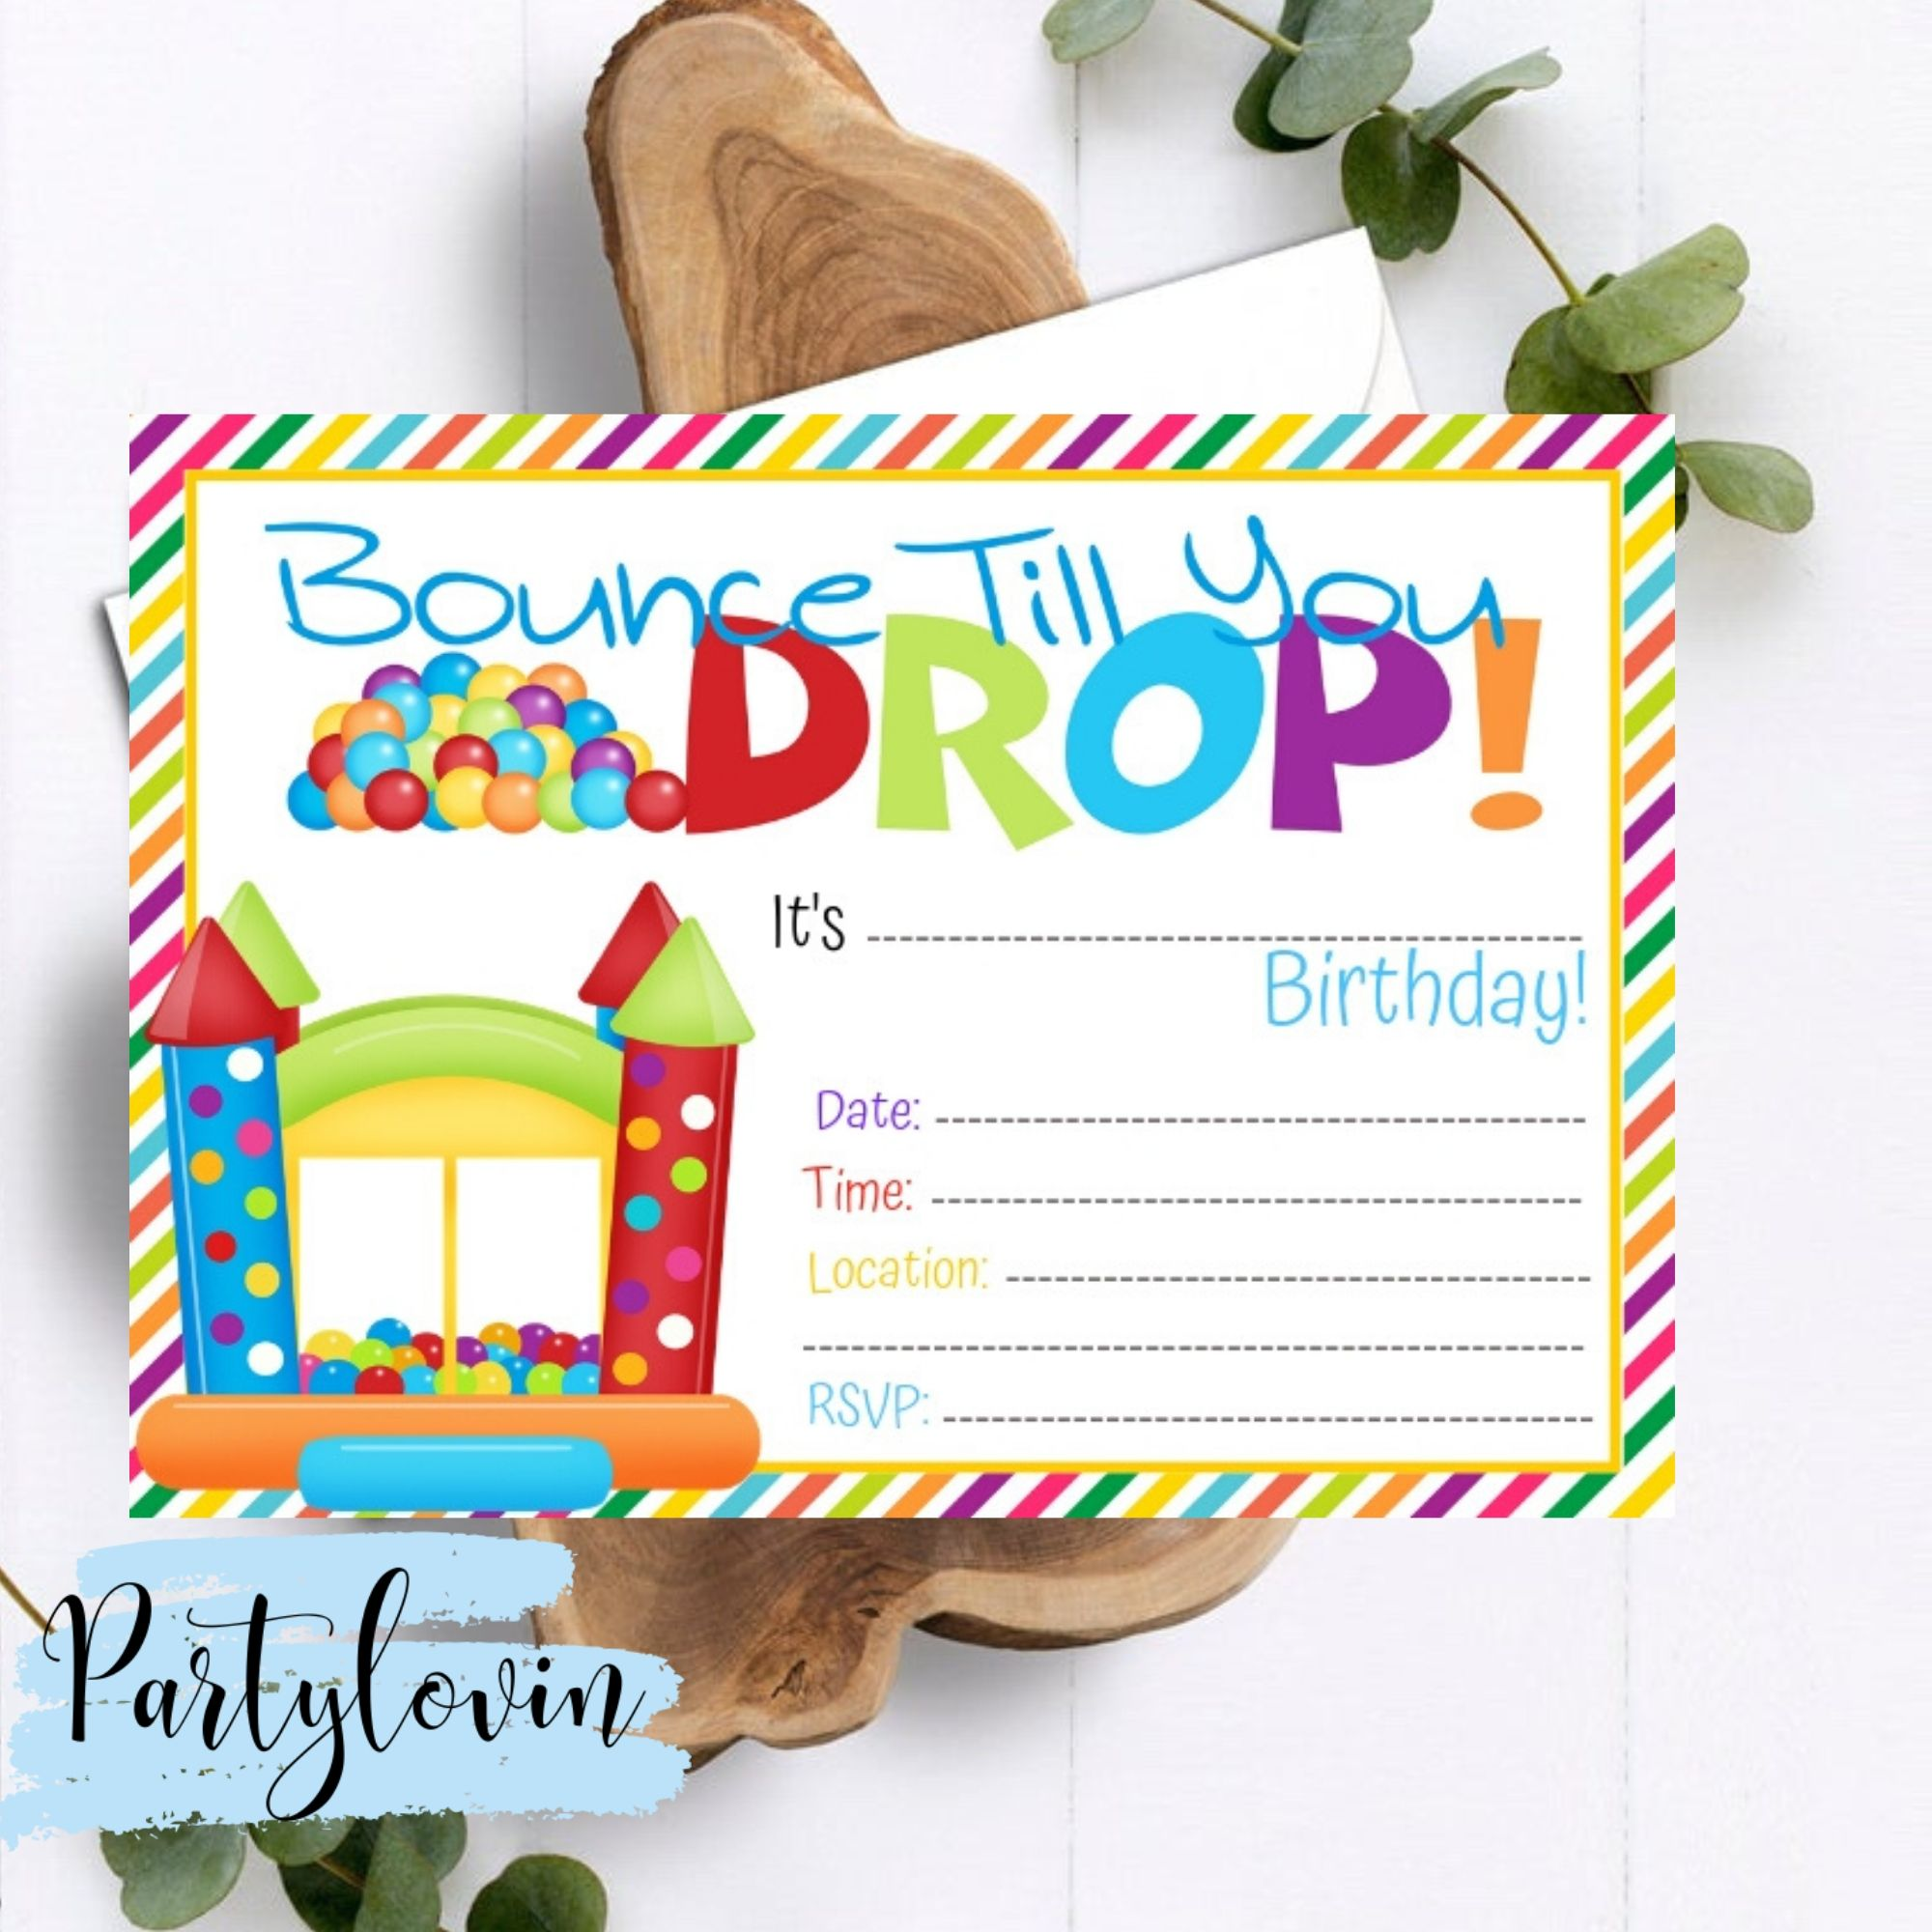 FREE PRINTABLE Bounce Till you Drop Birthday Party